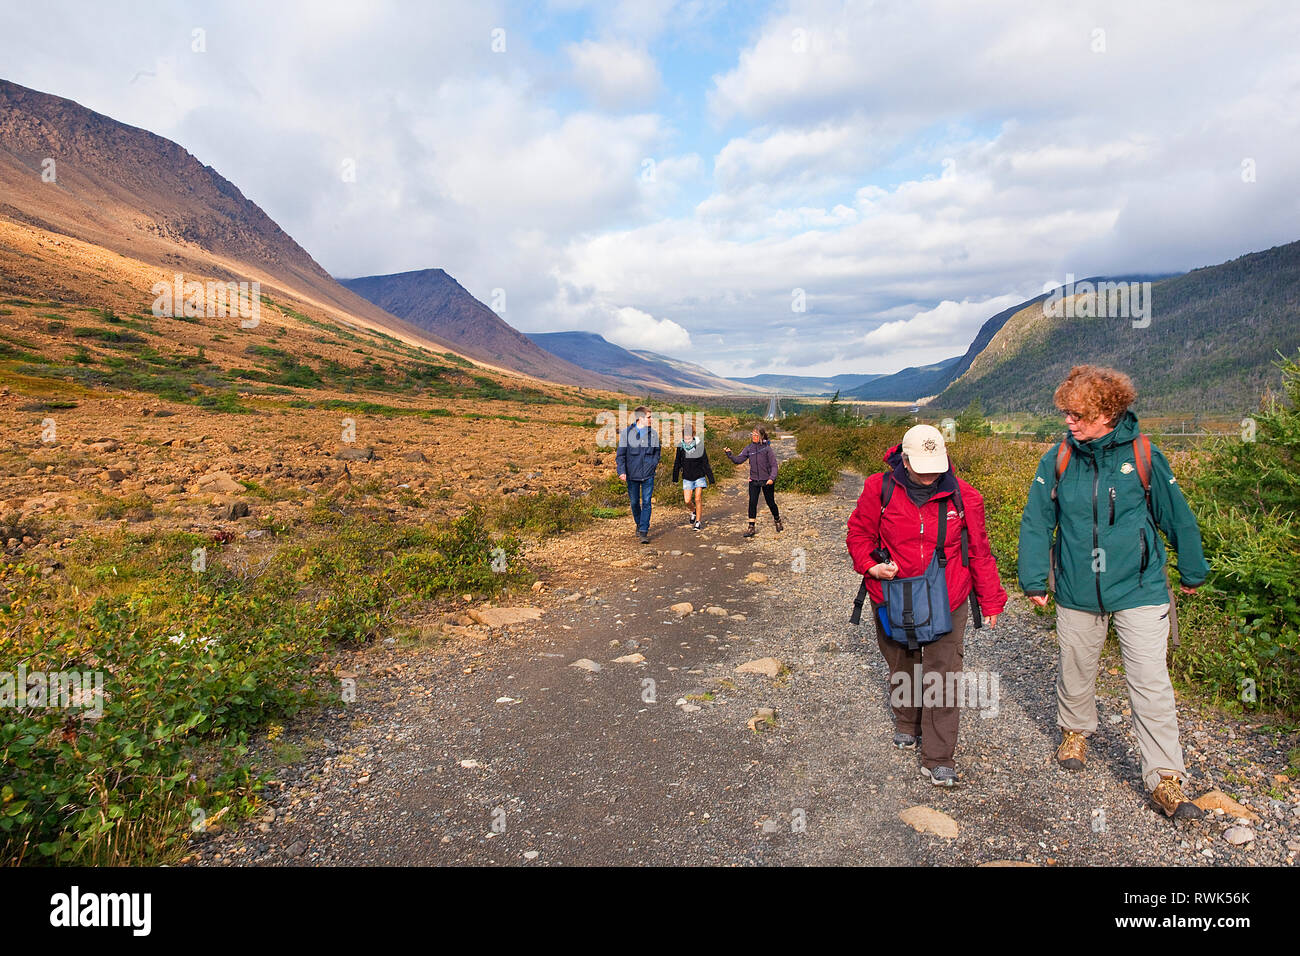 Parks Canada interpreter Kristen Oravec leading a small group of visitors along the Tablelands Trail in Gros Morne National Park, Newfoundland, Canada - Stock Image